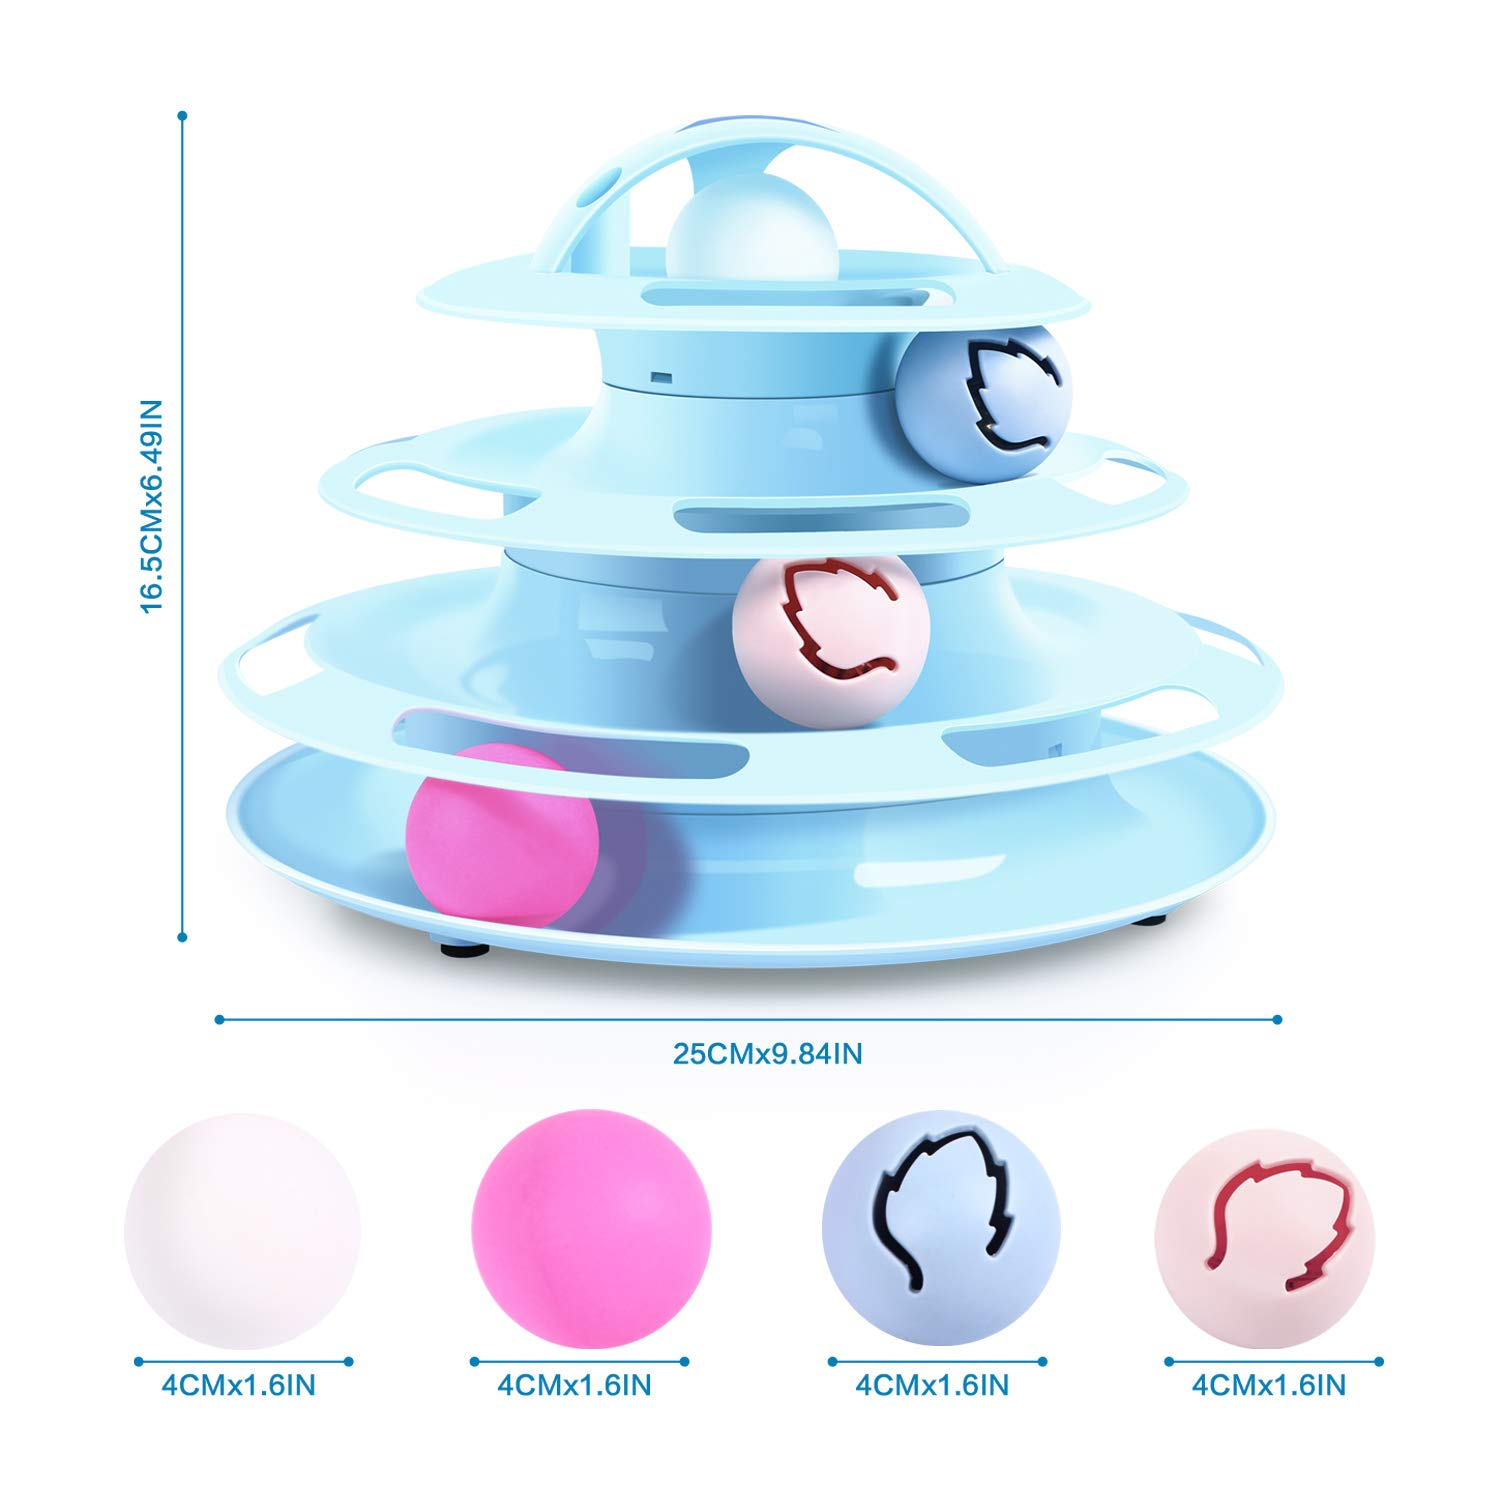 Pecute Cat Roller Toy with Interactive Teaser Mouse, 4 Tier Cat Tower of Track Toy with Catnip and Flash Balls